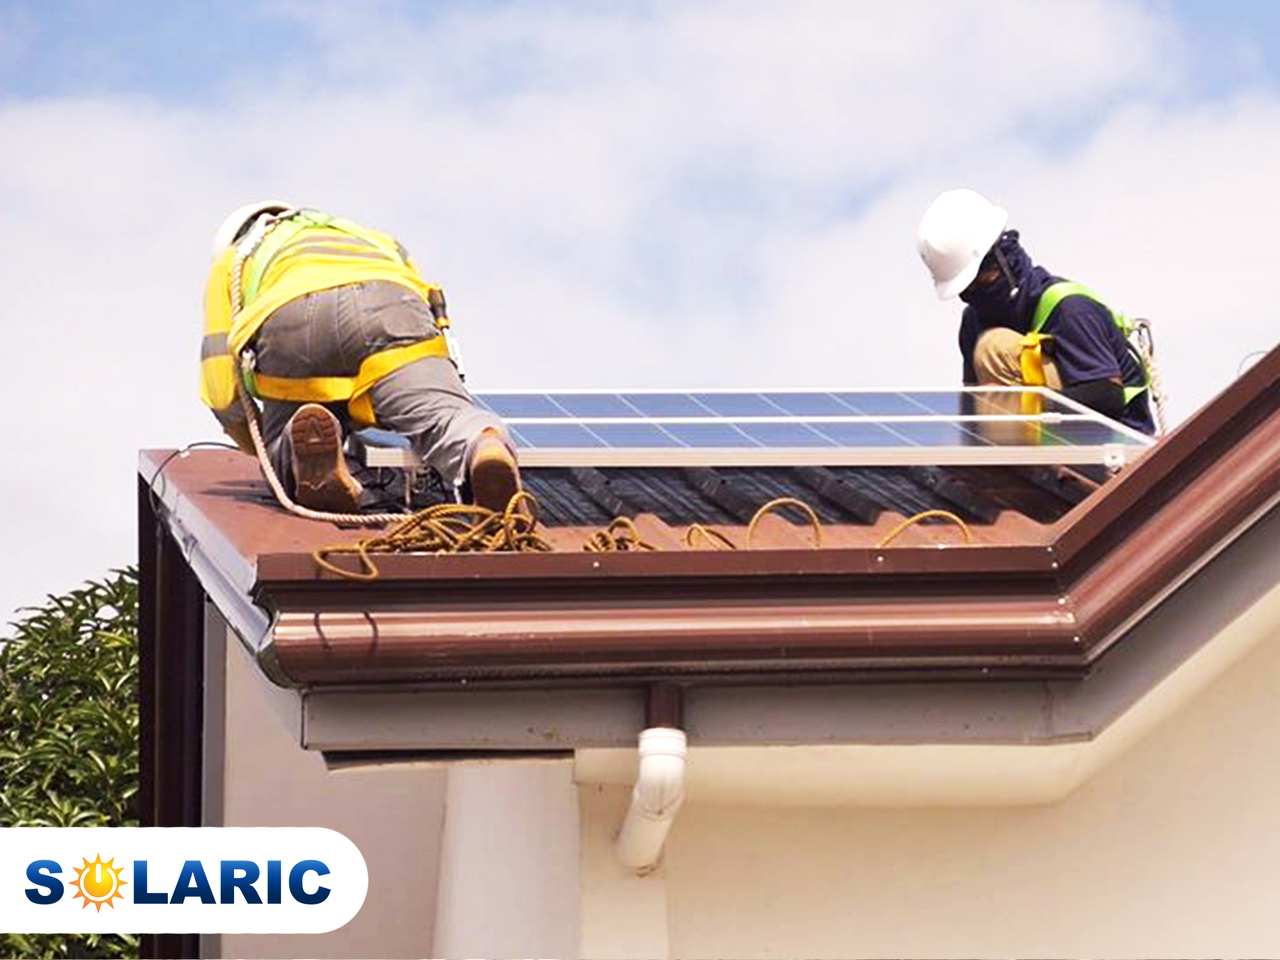 Solaric workers installing solar roofing